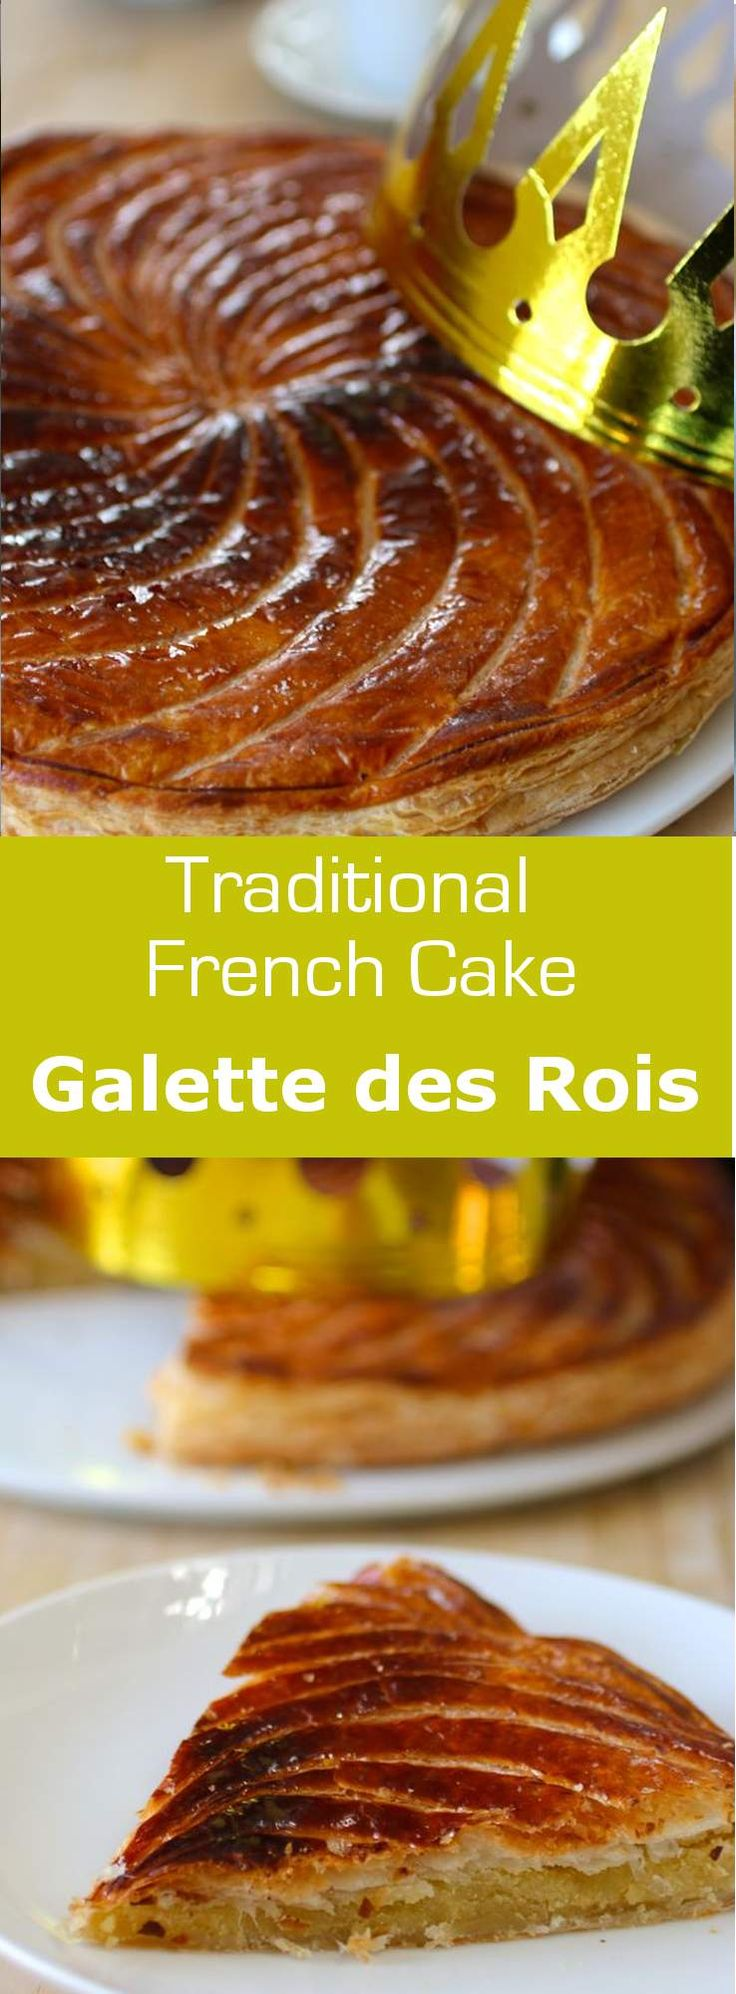 Pithivier is a traditional galette des rois (King Cake for Epiphany) from the Centre region of France. This recipe uses almond paste instead of frangipane.